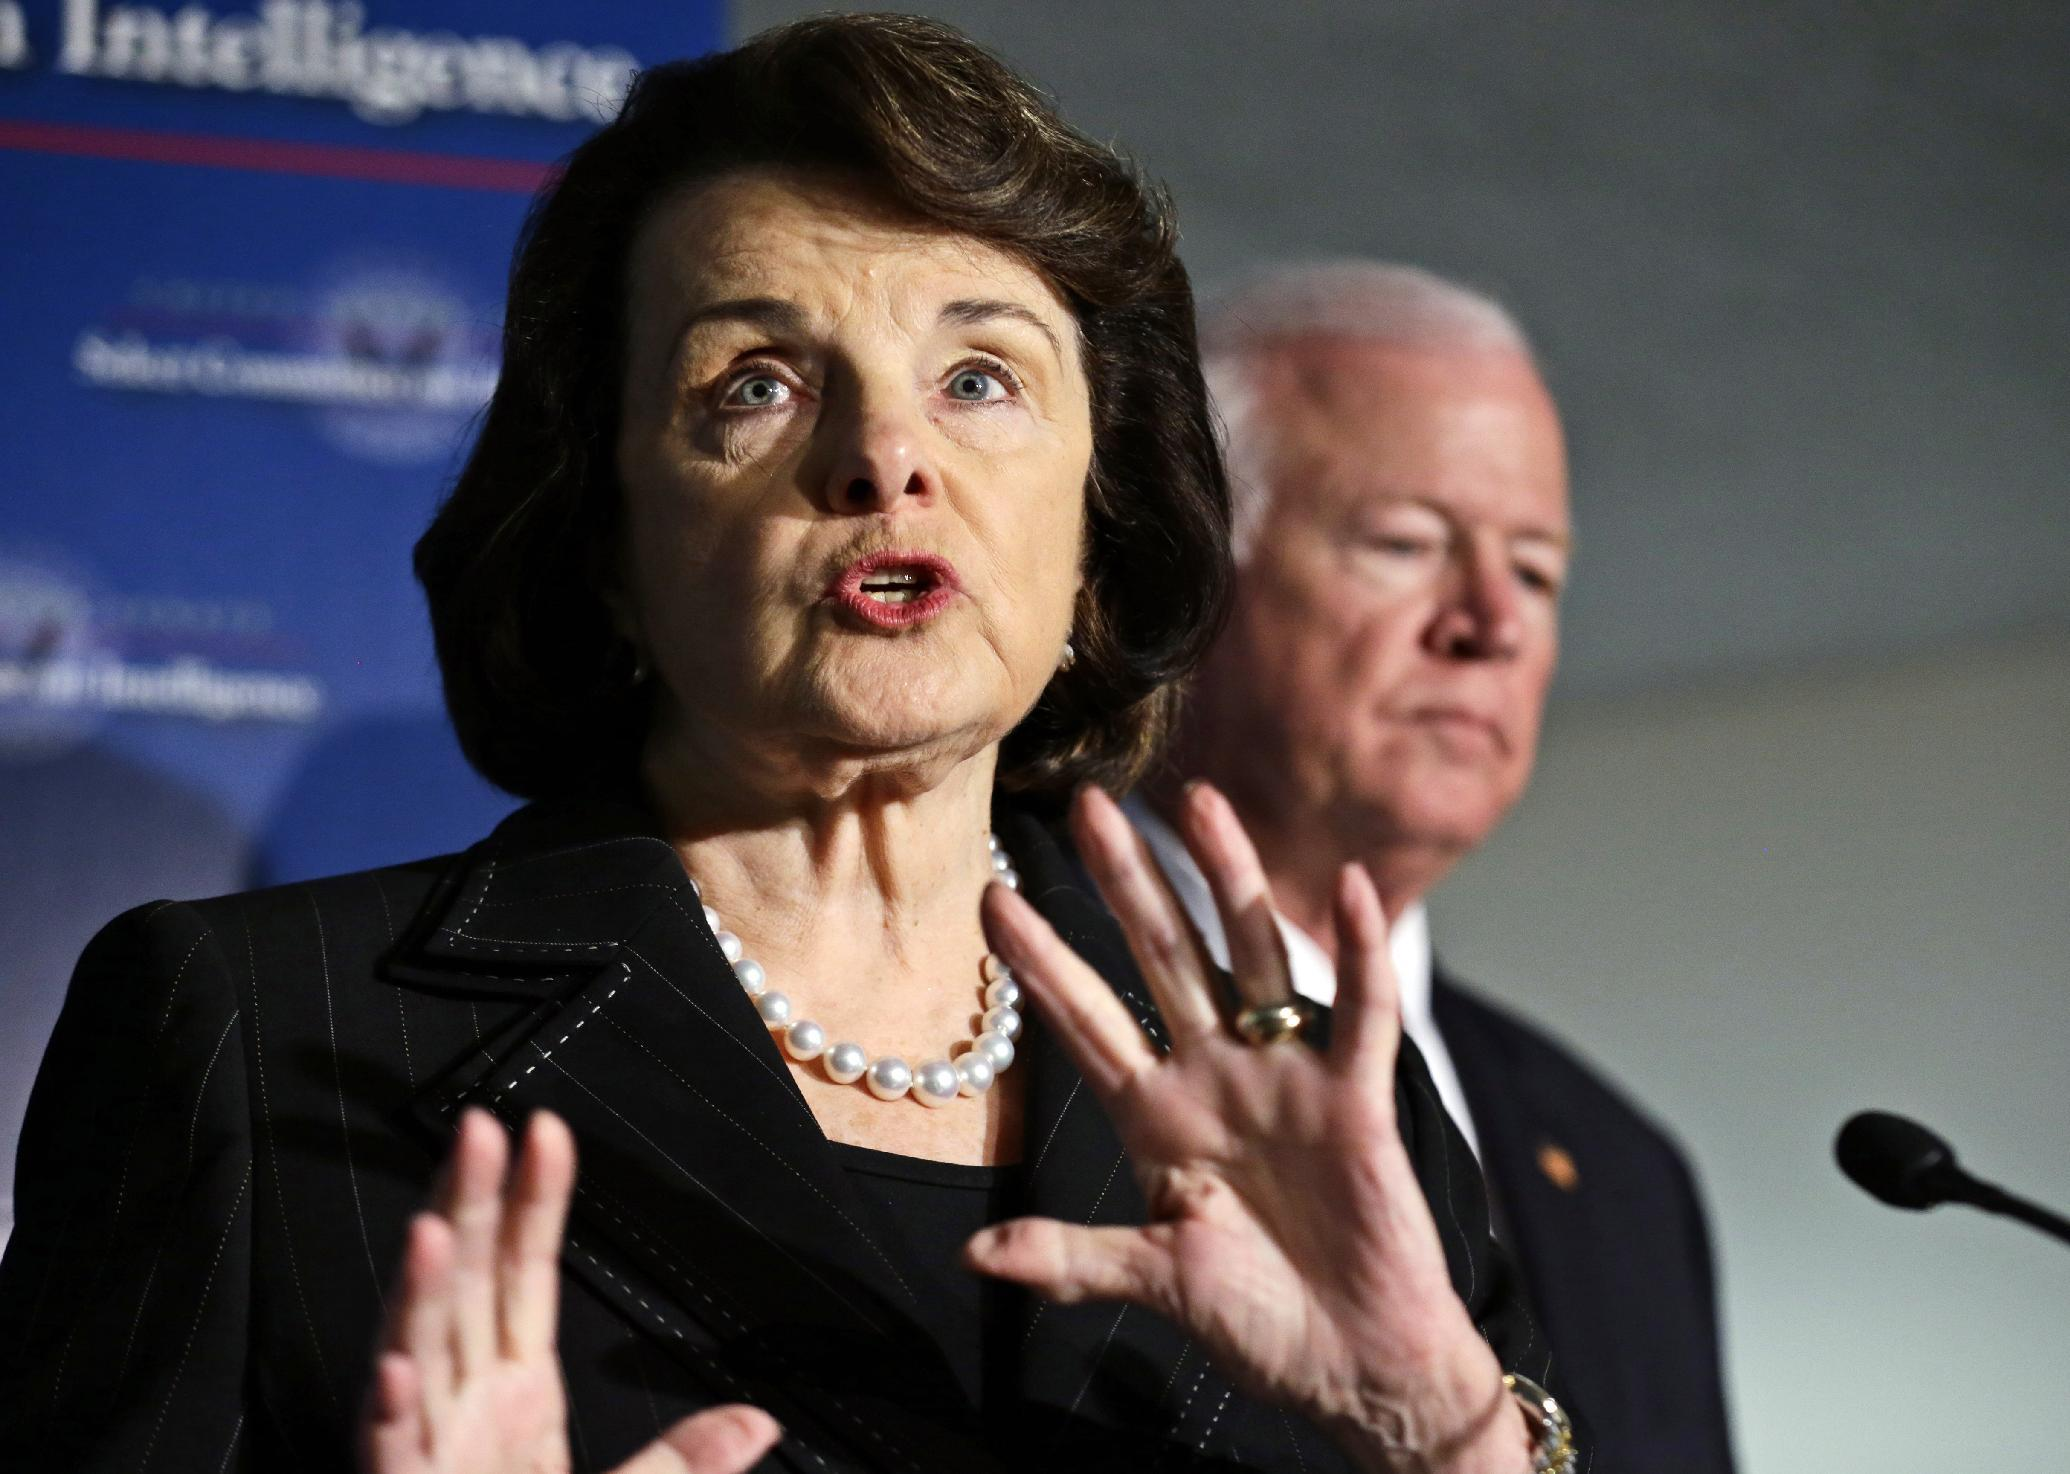 Senate Intelligence Committee Chair Sen. Dianne Feinstein, D-Calif., left, with Senate Intelligence Committee Vice Chairman Sen. Saxby Chambliss, R-Ga., right, speaks during a media availability after a closed-door oversight hearing of the committee on Capitol Hill in Washington, Thursday, Nov. 15, 2012, looking into the circumstances surrounding the deadly attack on the U.S. Consulate in Benghazi, Libya. (AP Photo/Alex Brandon)